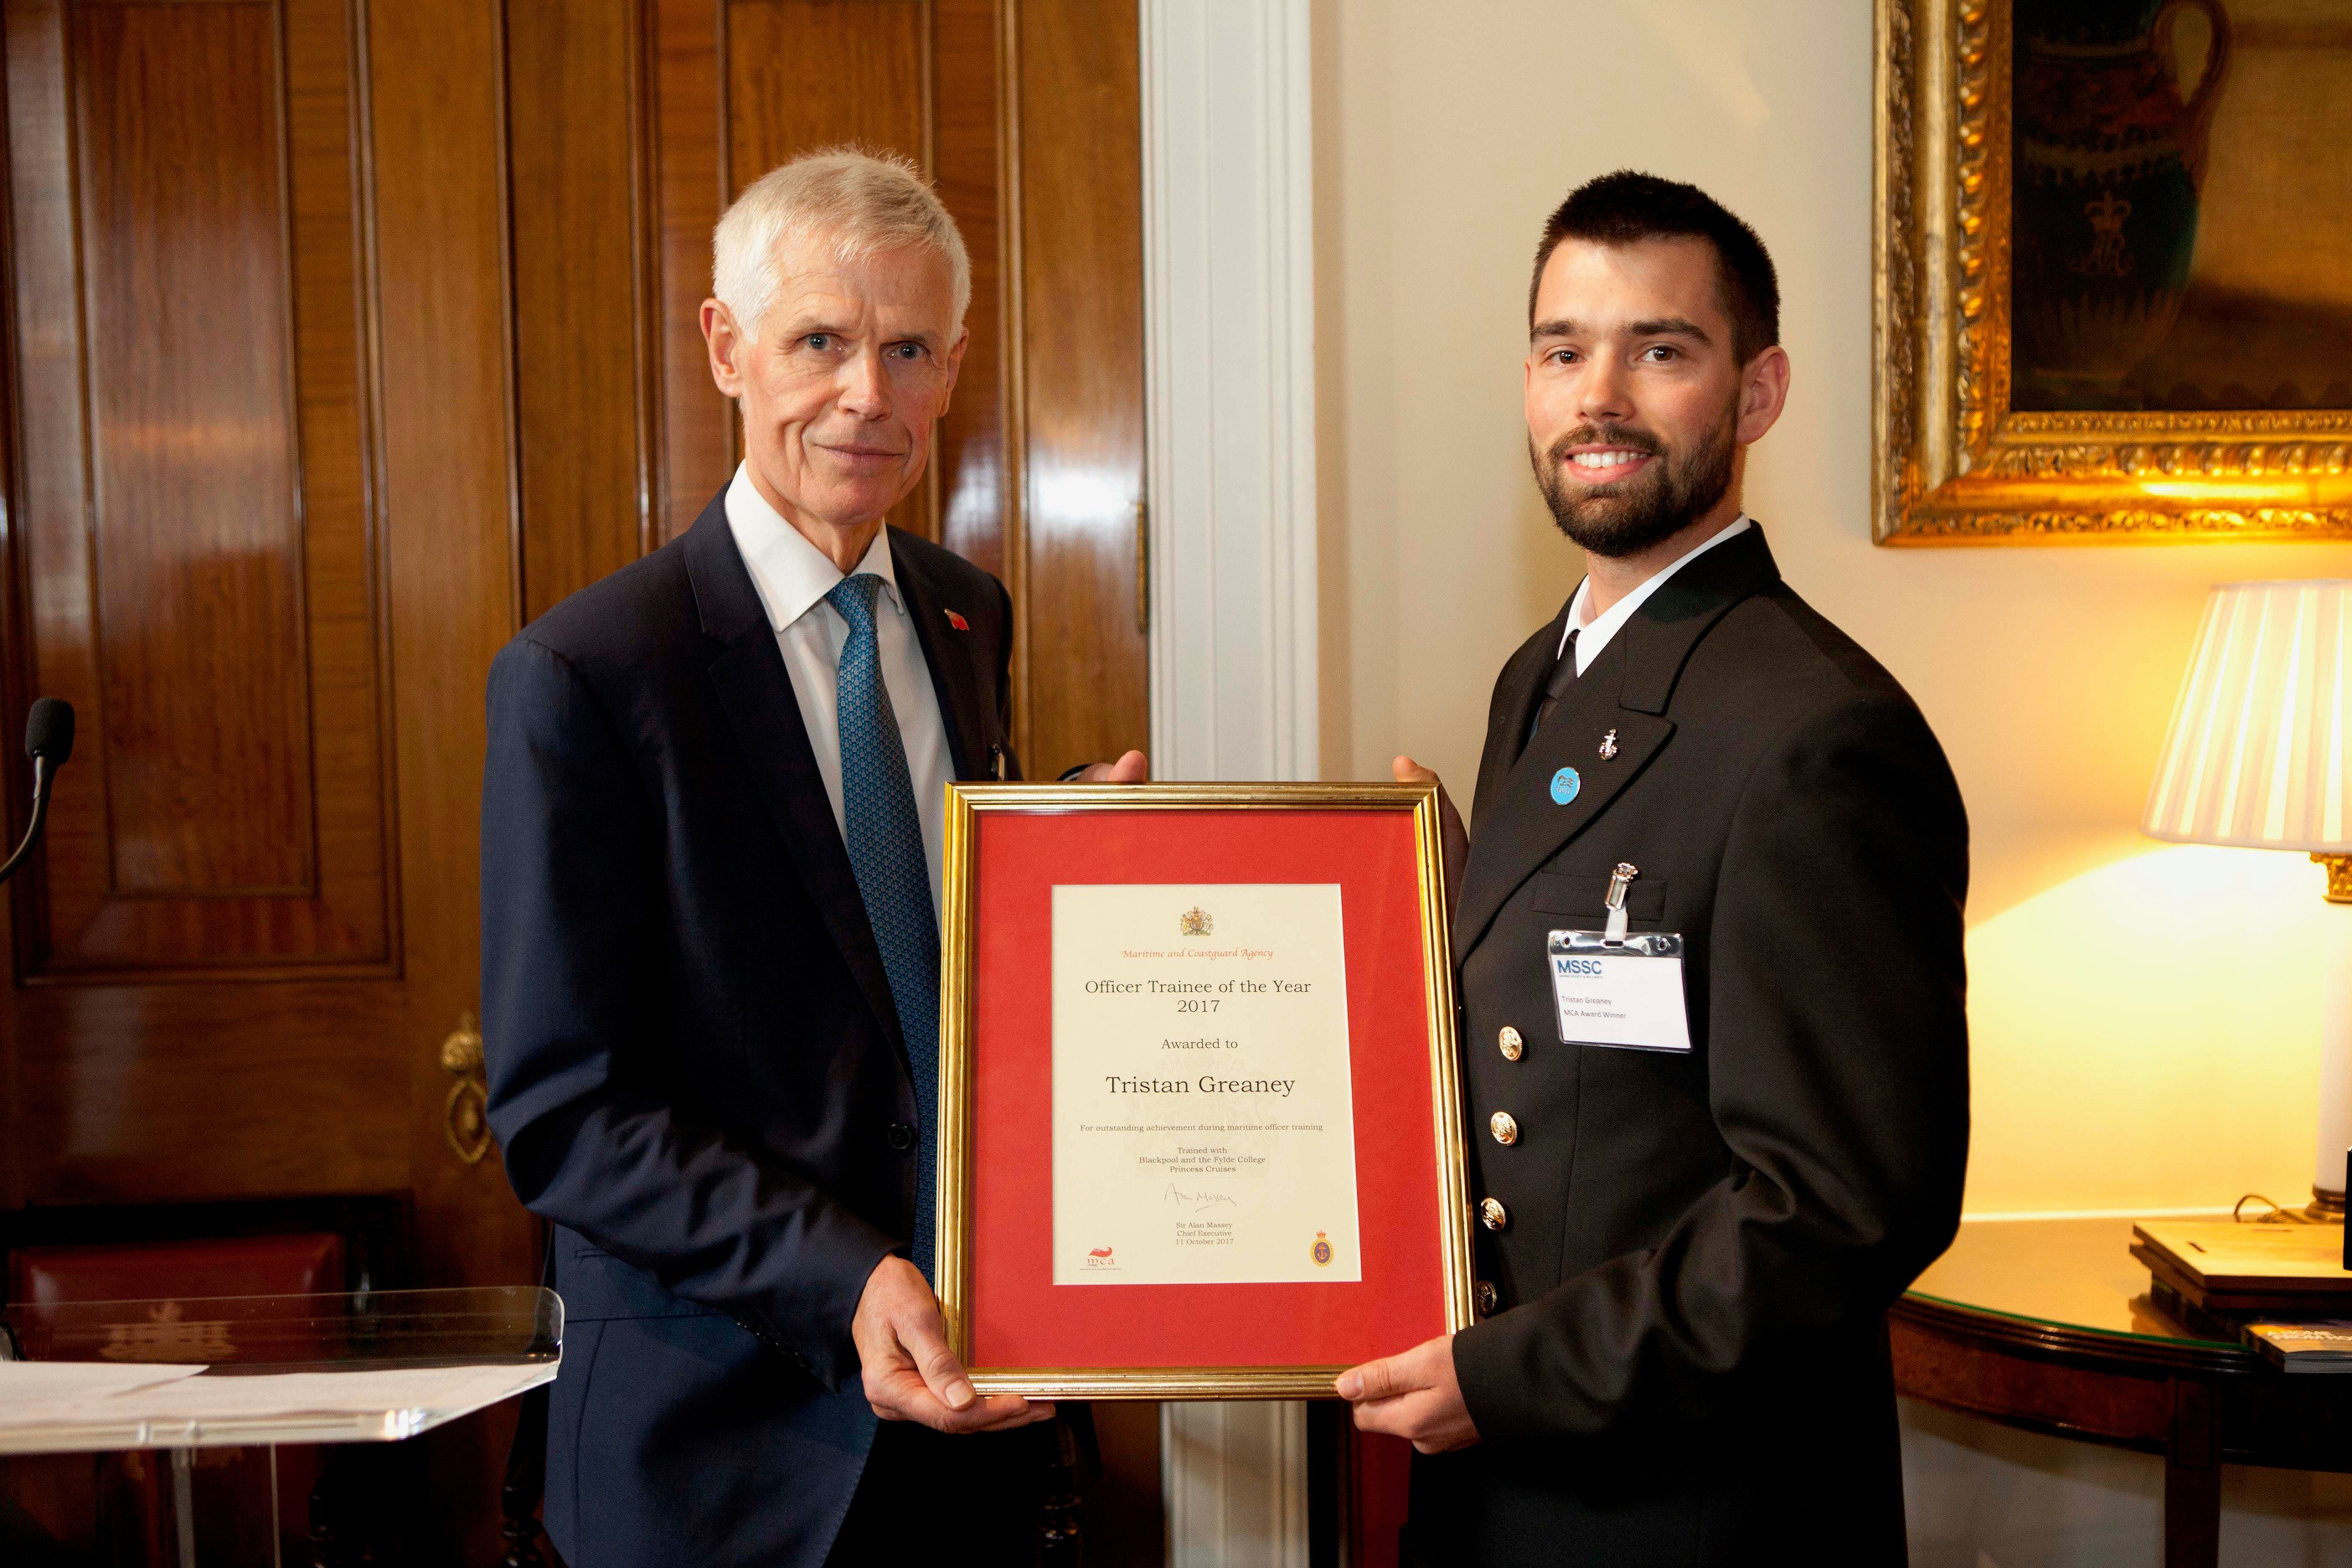 MCA Officer Trainee of the Year honoured at awards ceremony